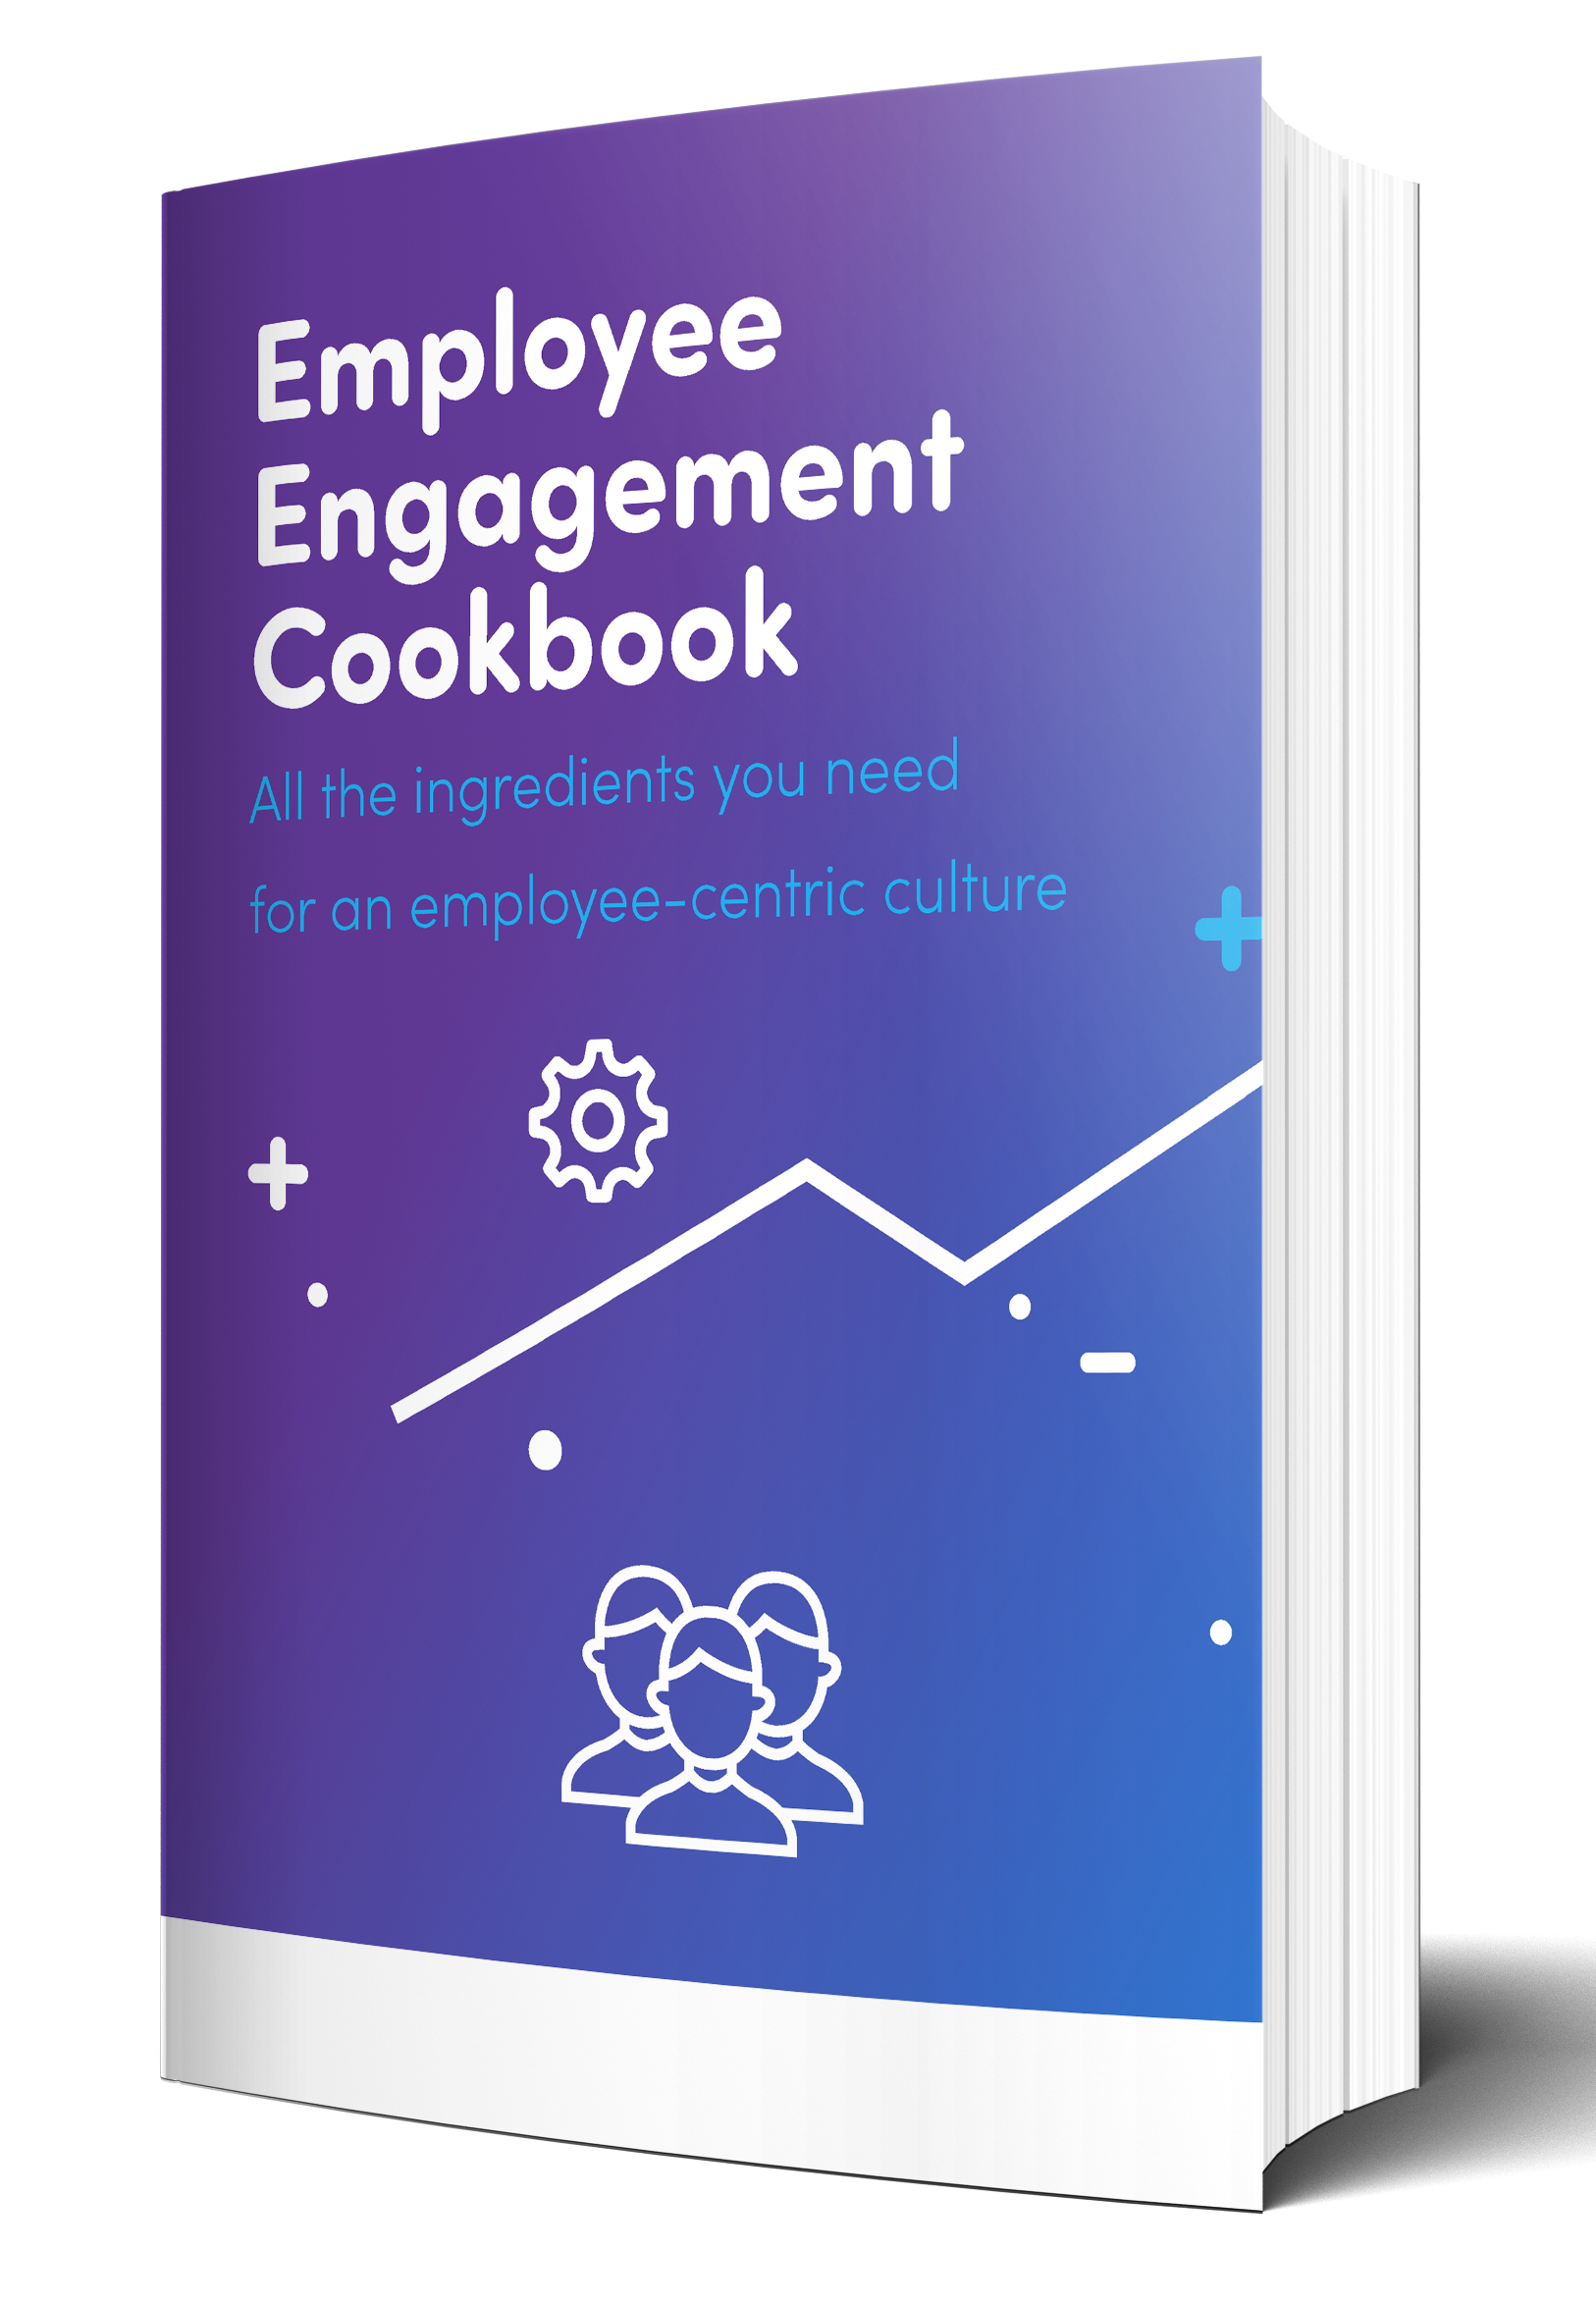 employee engagement cookbook hello customer